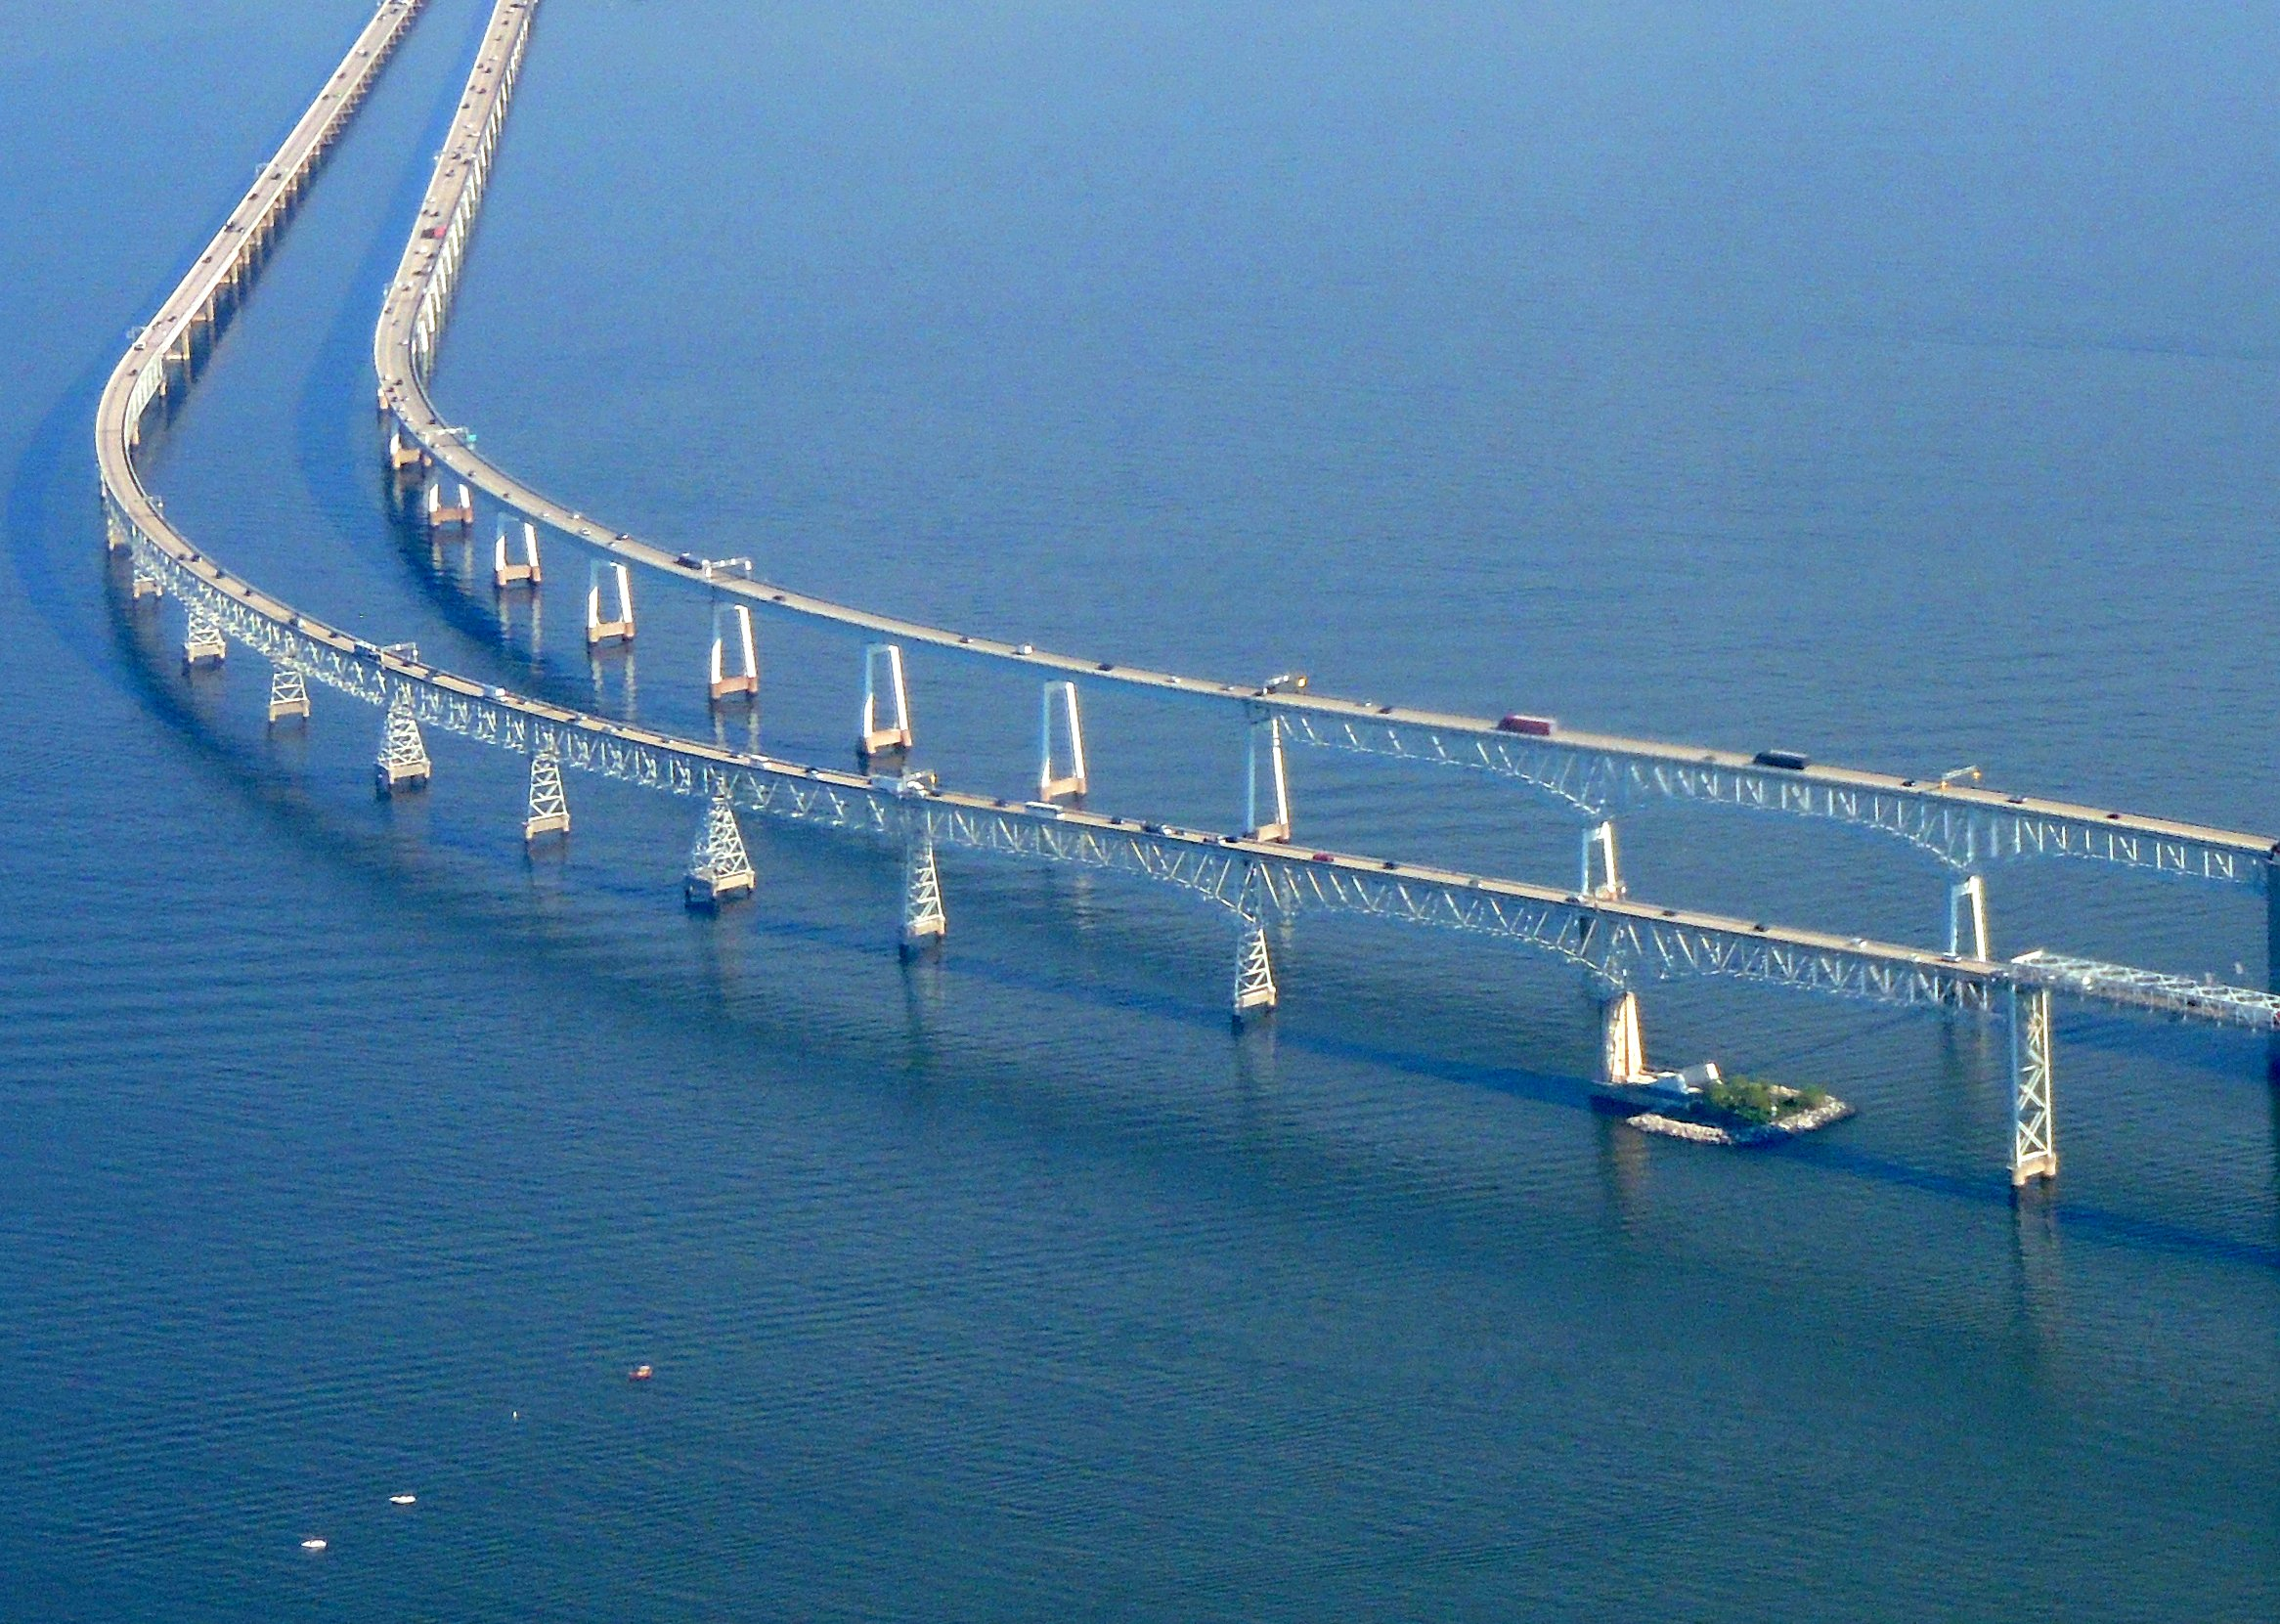 Twin Bay Bridges across the Chesepeake in Maryland